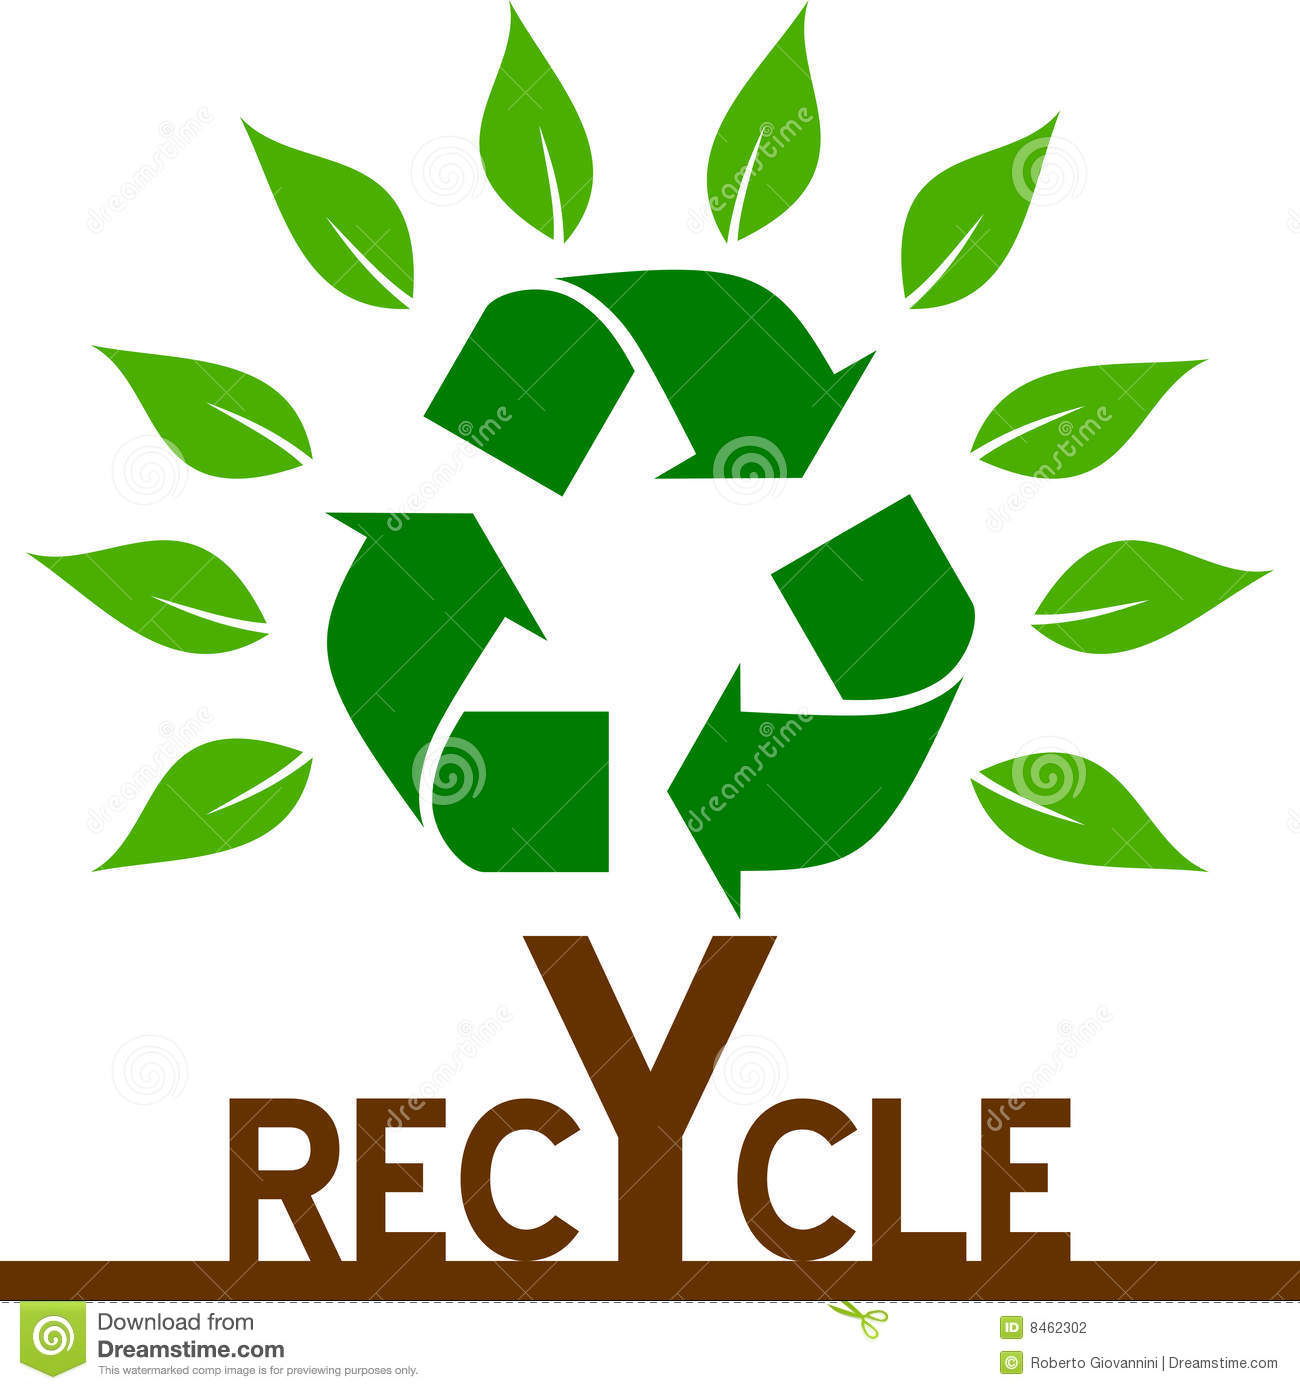 Four écologique Recycle Stock Illustrations 99 921 Recycle Stock